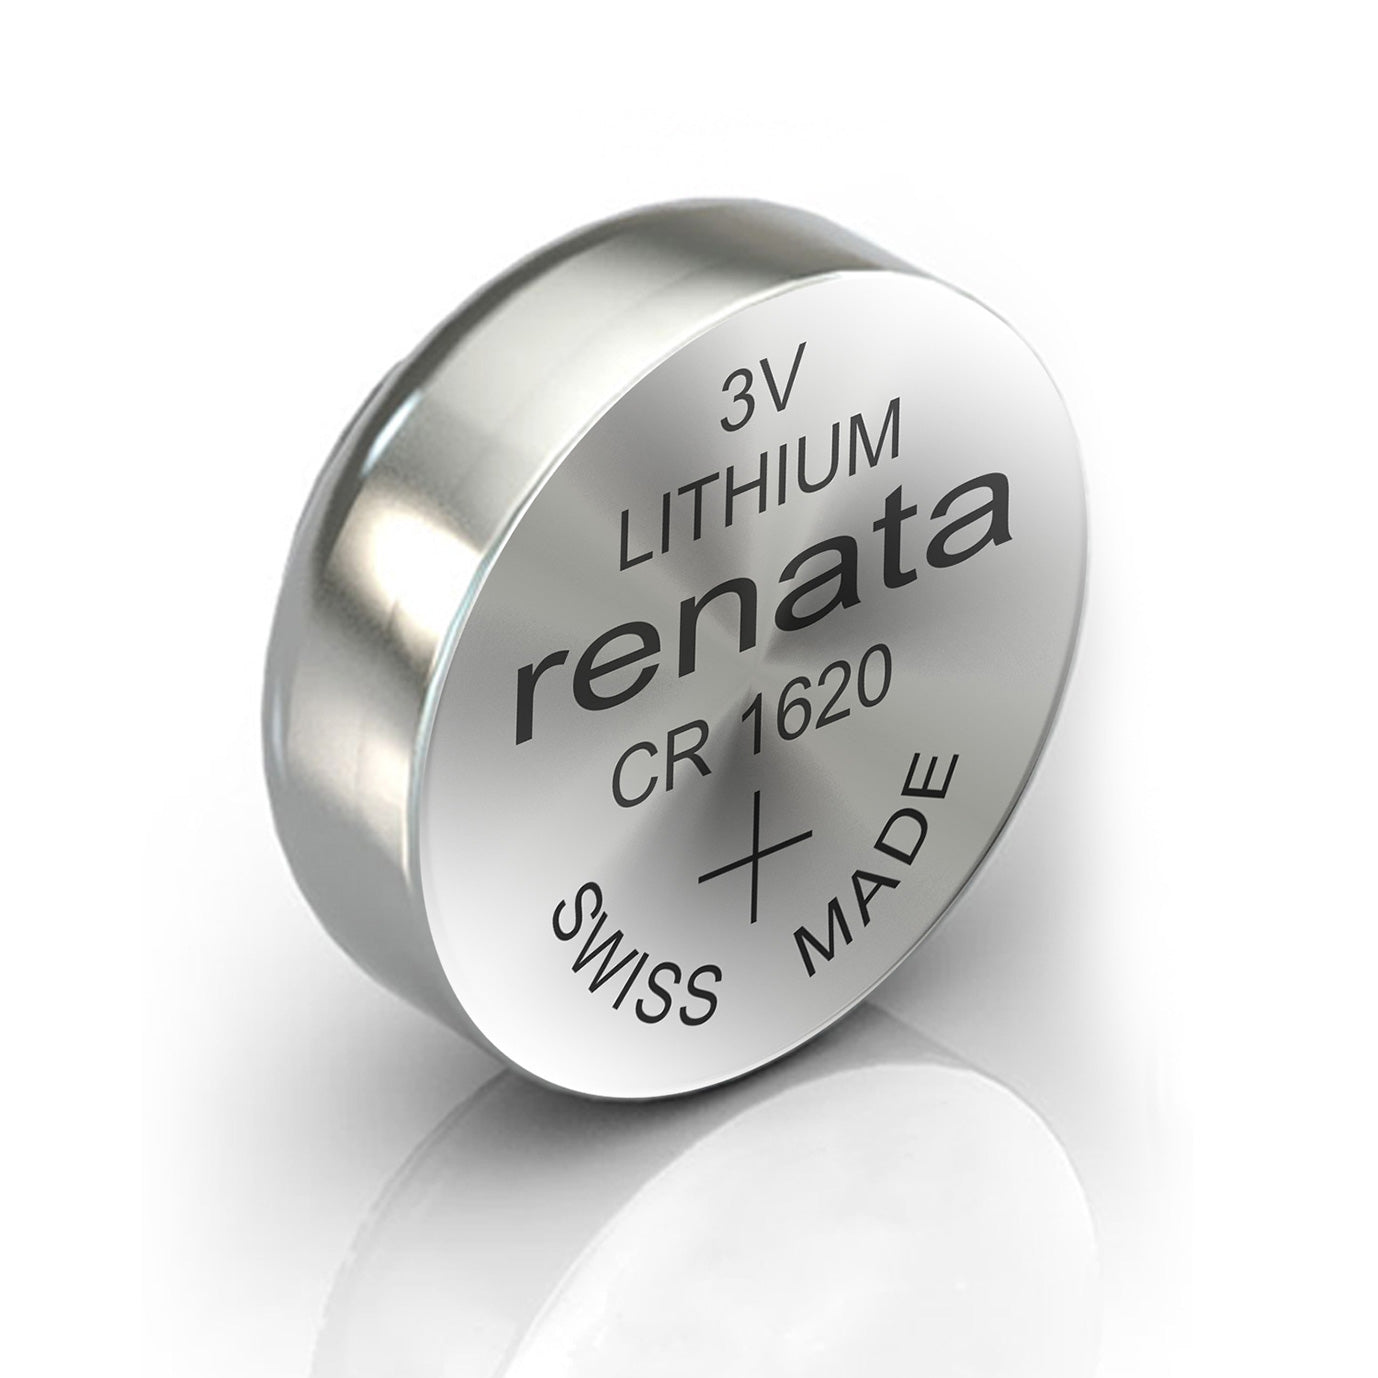 5x Renata CR1620 Watch battery Swiss Silver Button Coin Lithium 3V, Electronics by TradeNRG